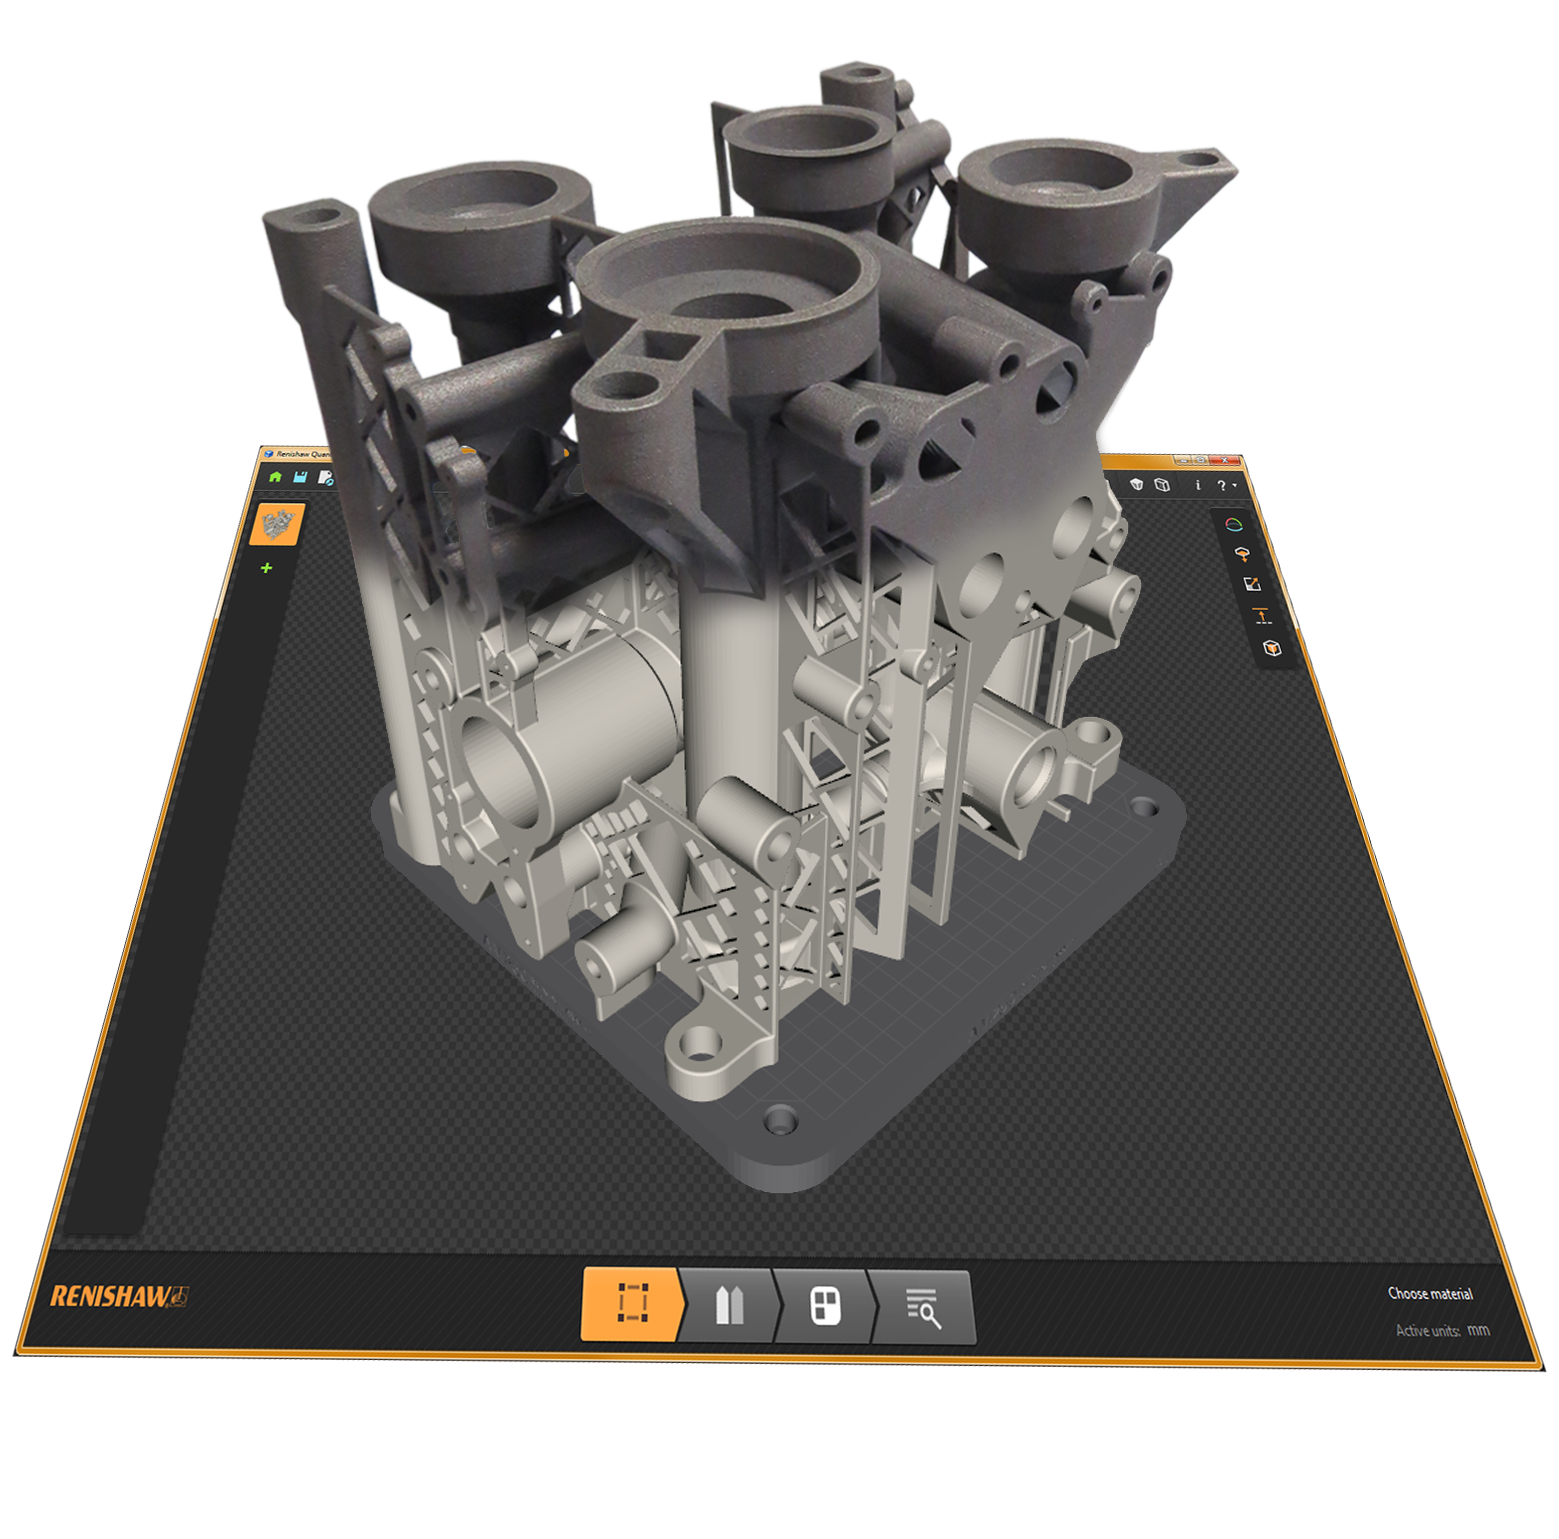 Renishaw Unveils New Metal 3D Printers & Software